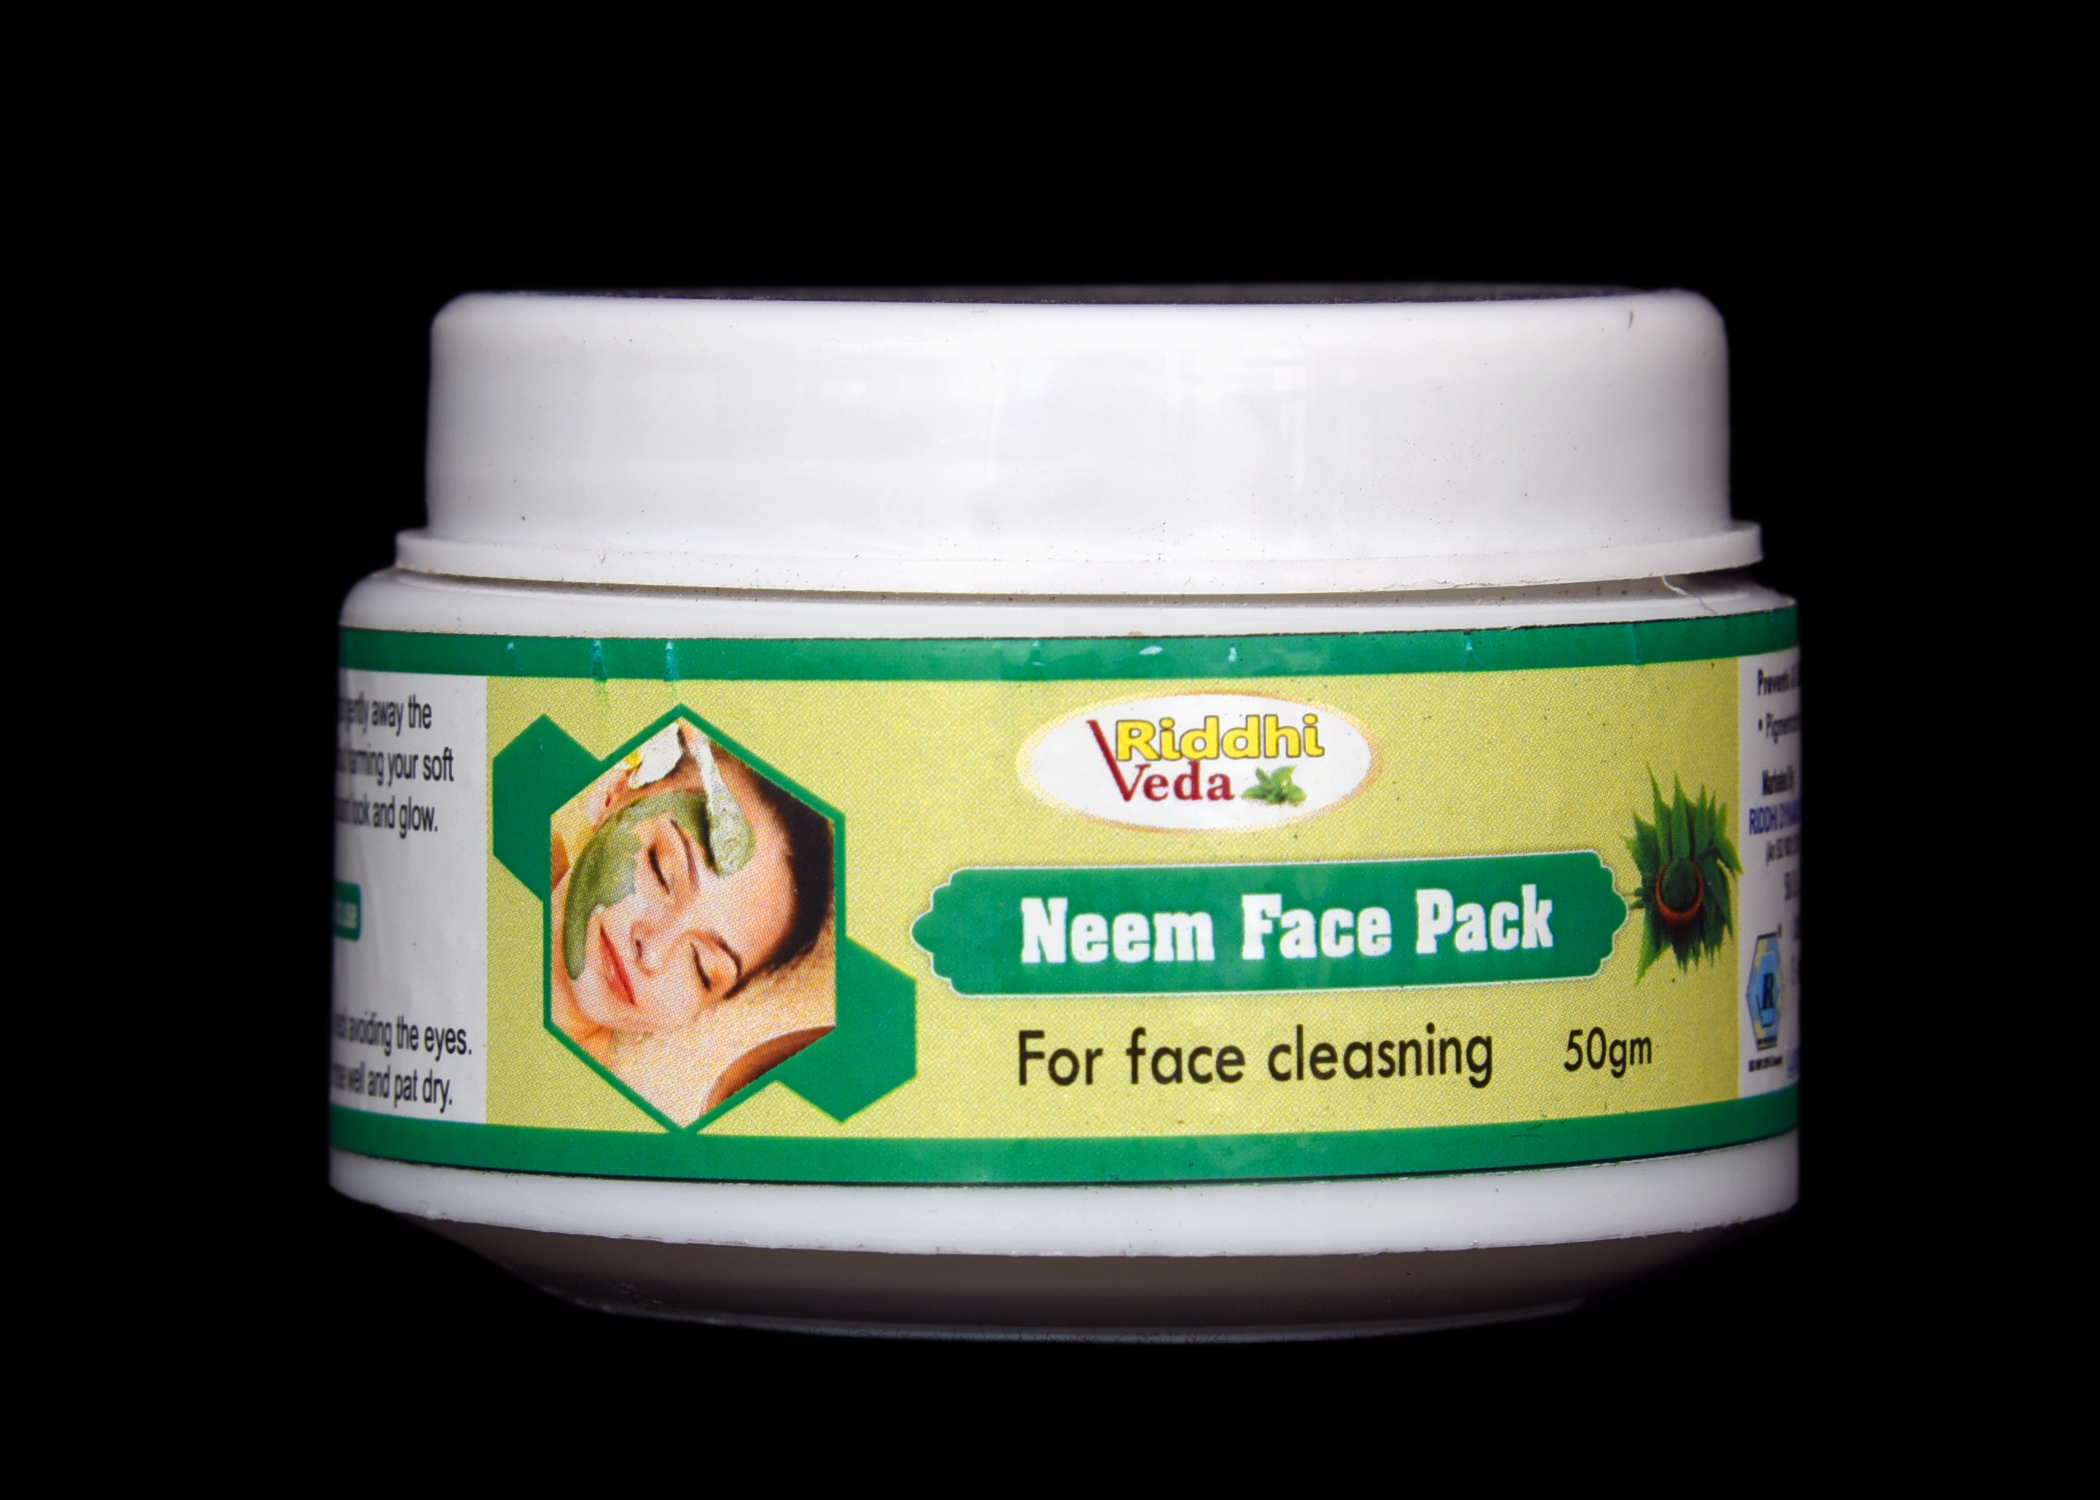 RIDDHI VEDA NEEM FACE PACK